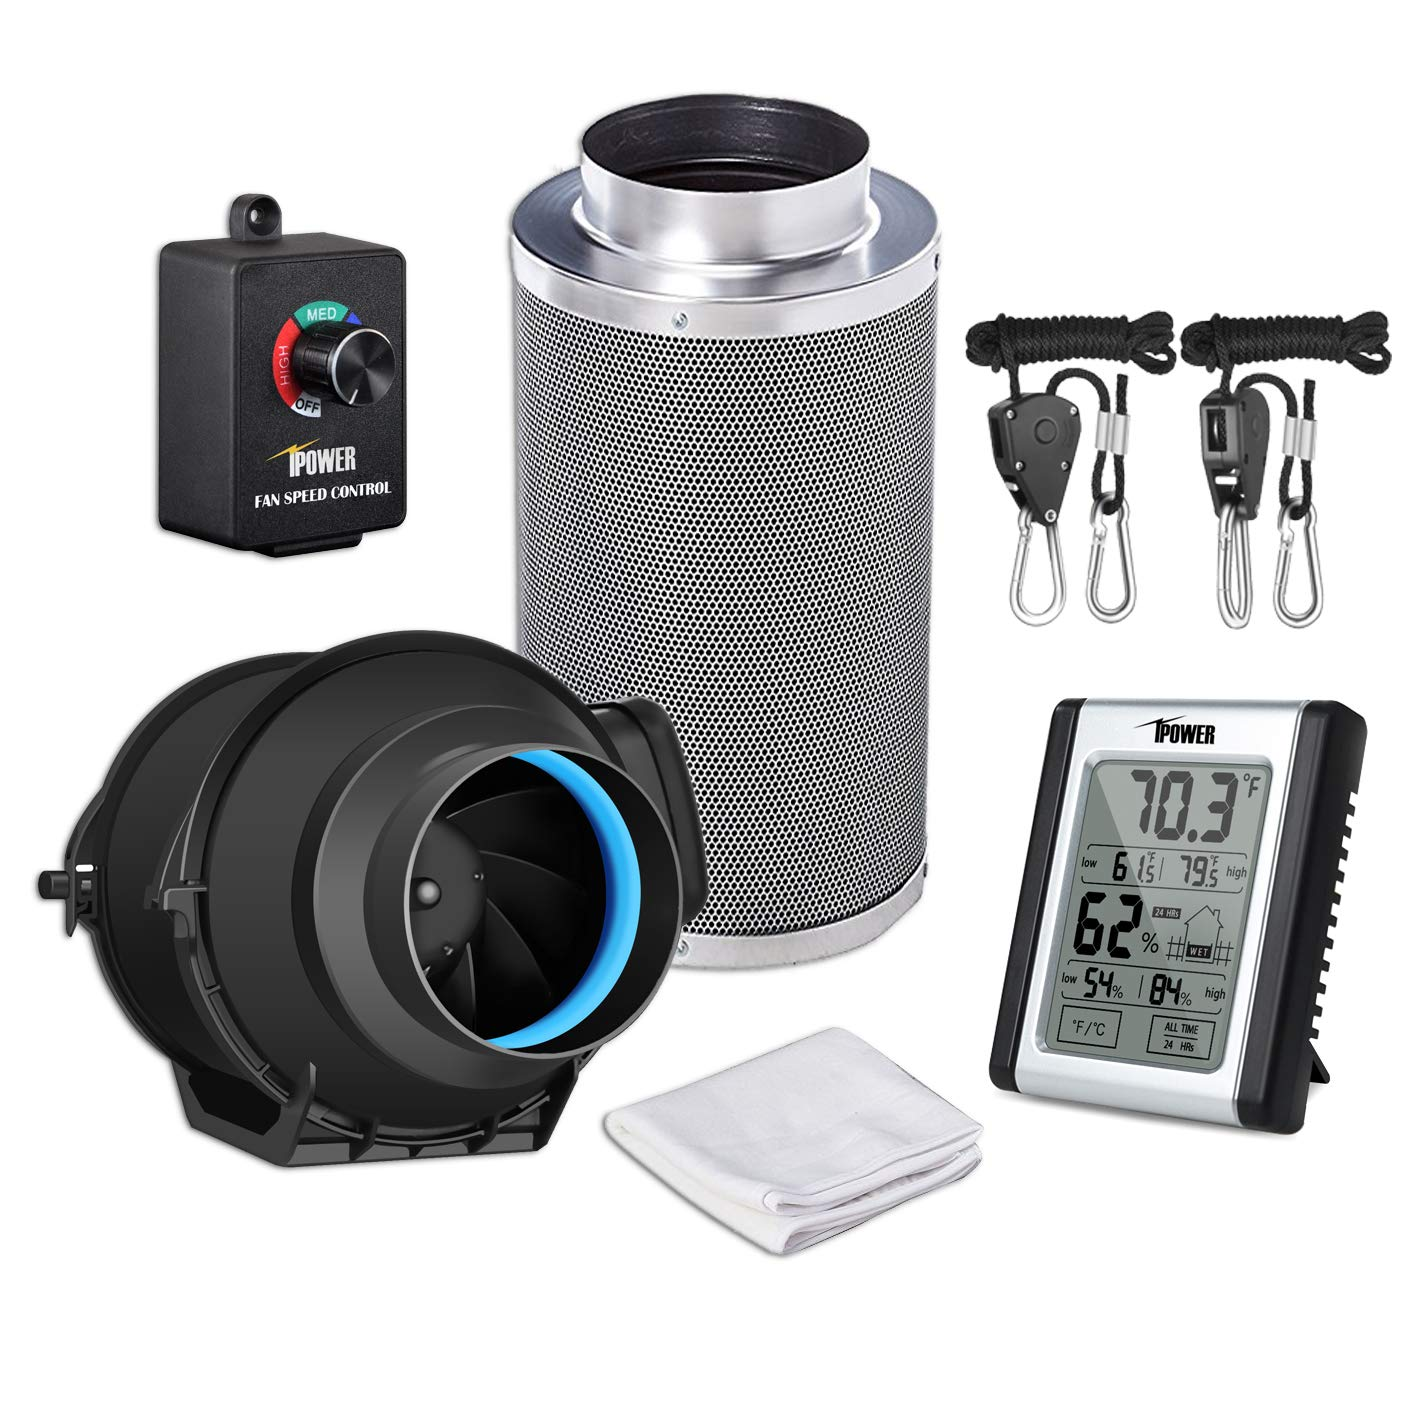 iPower GLFANXEXPSET4CHUMD 4 Inch 150 CFM Inline Carbon Filter with Fan Speed Controller and Temperature Humidity Monitor Grow Tent Ventilation, 4'', Black